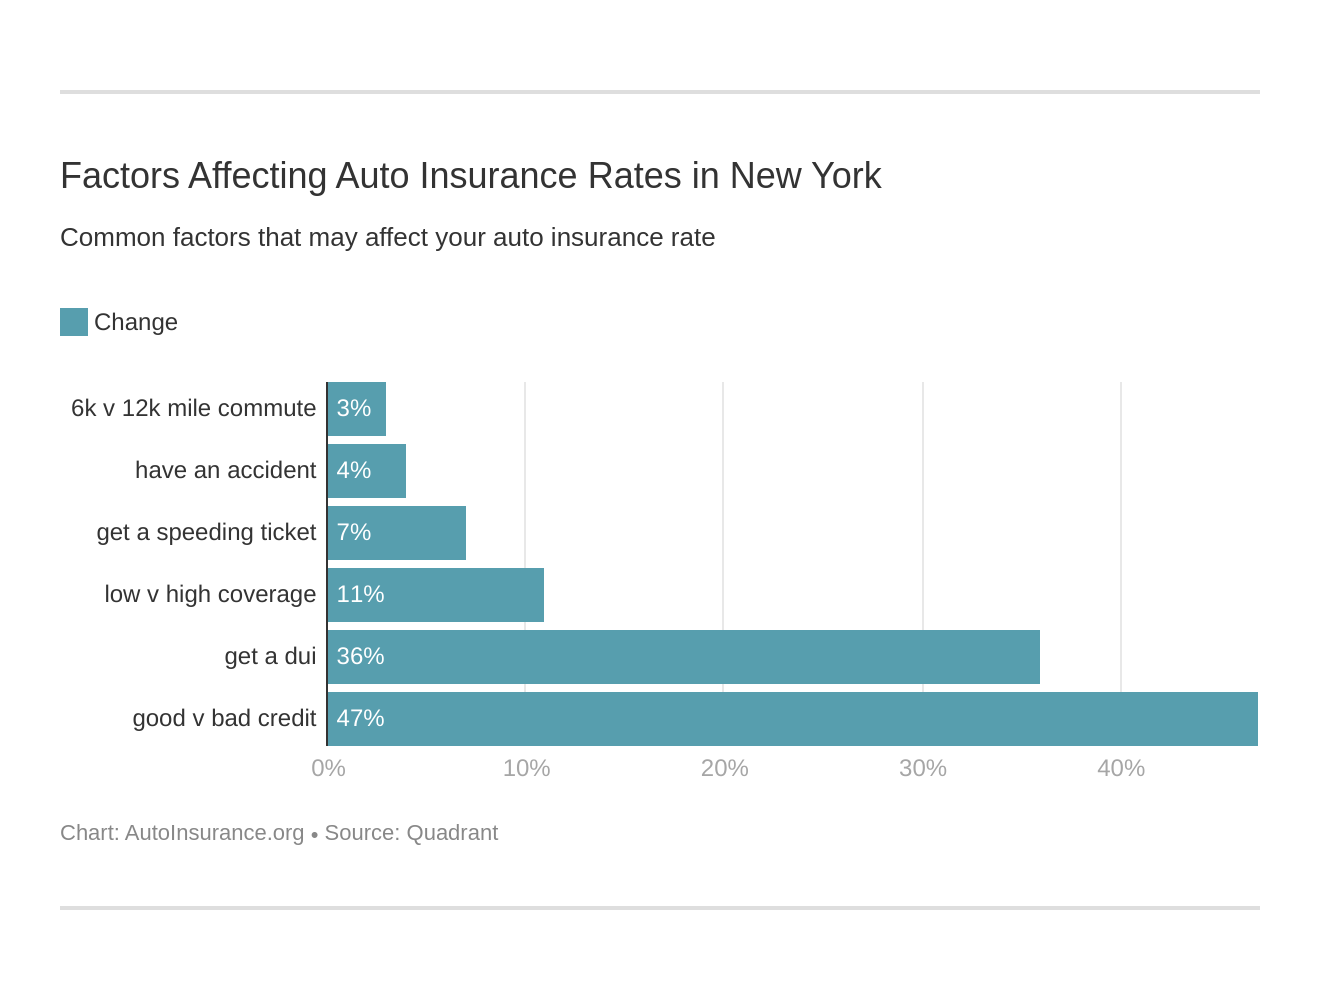 Factors Affecting Auto Insurance Rates in New York